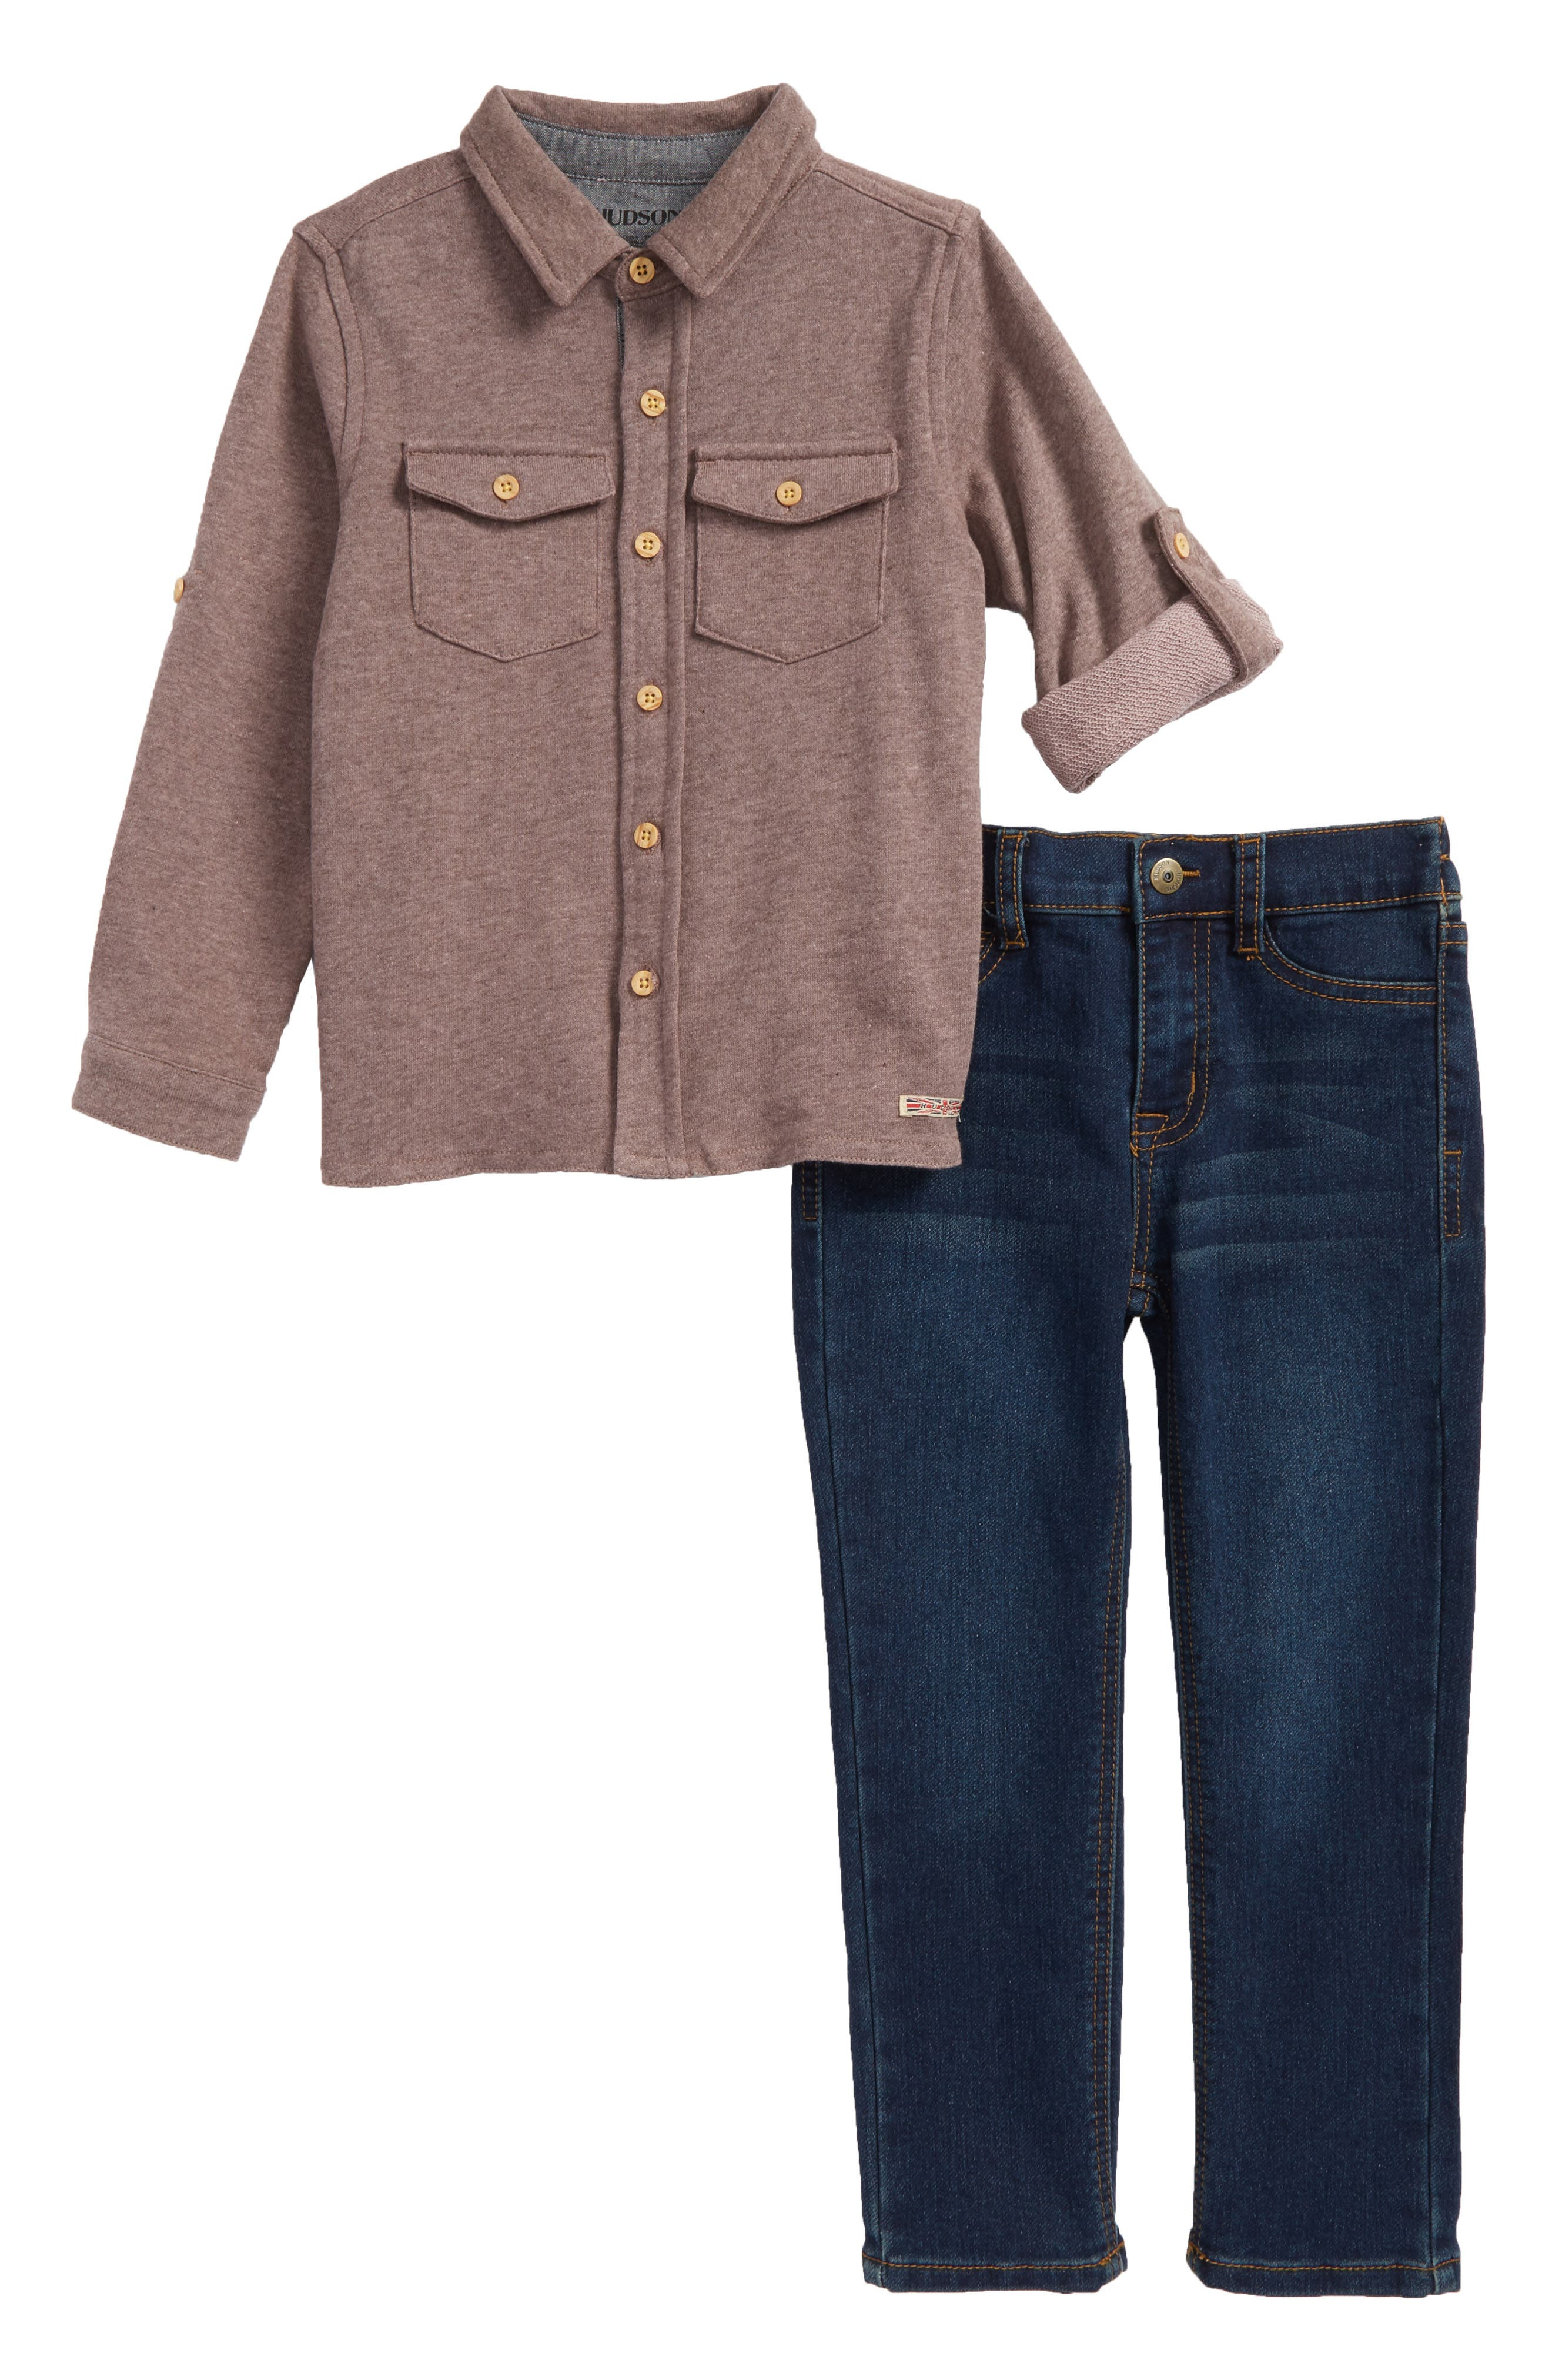 French Terry Shirt & Jeans Set,                         Main,                         color, Ink